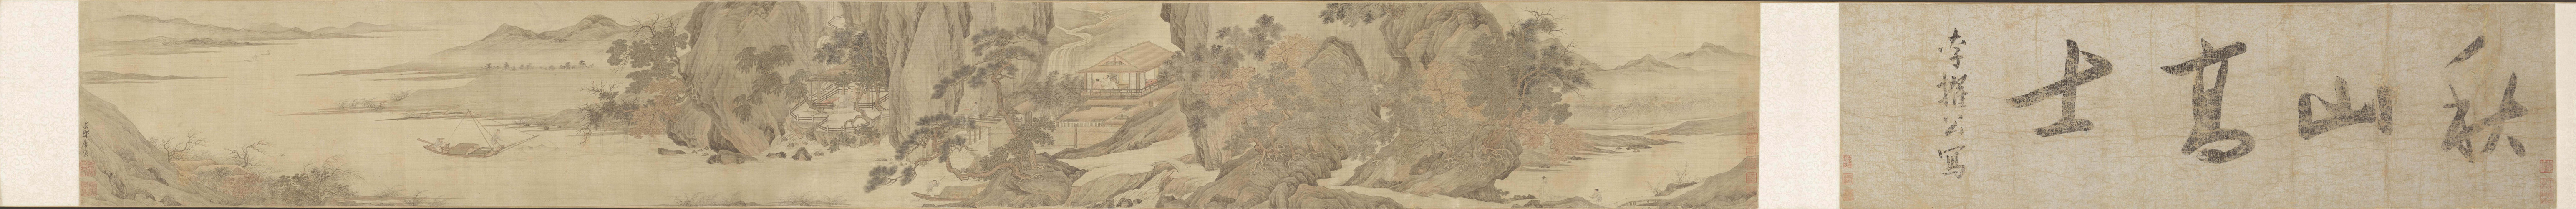 Scholar-hermits in the Autumn Mountains